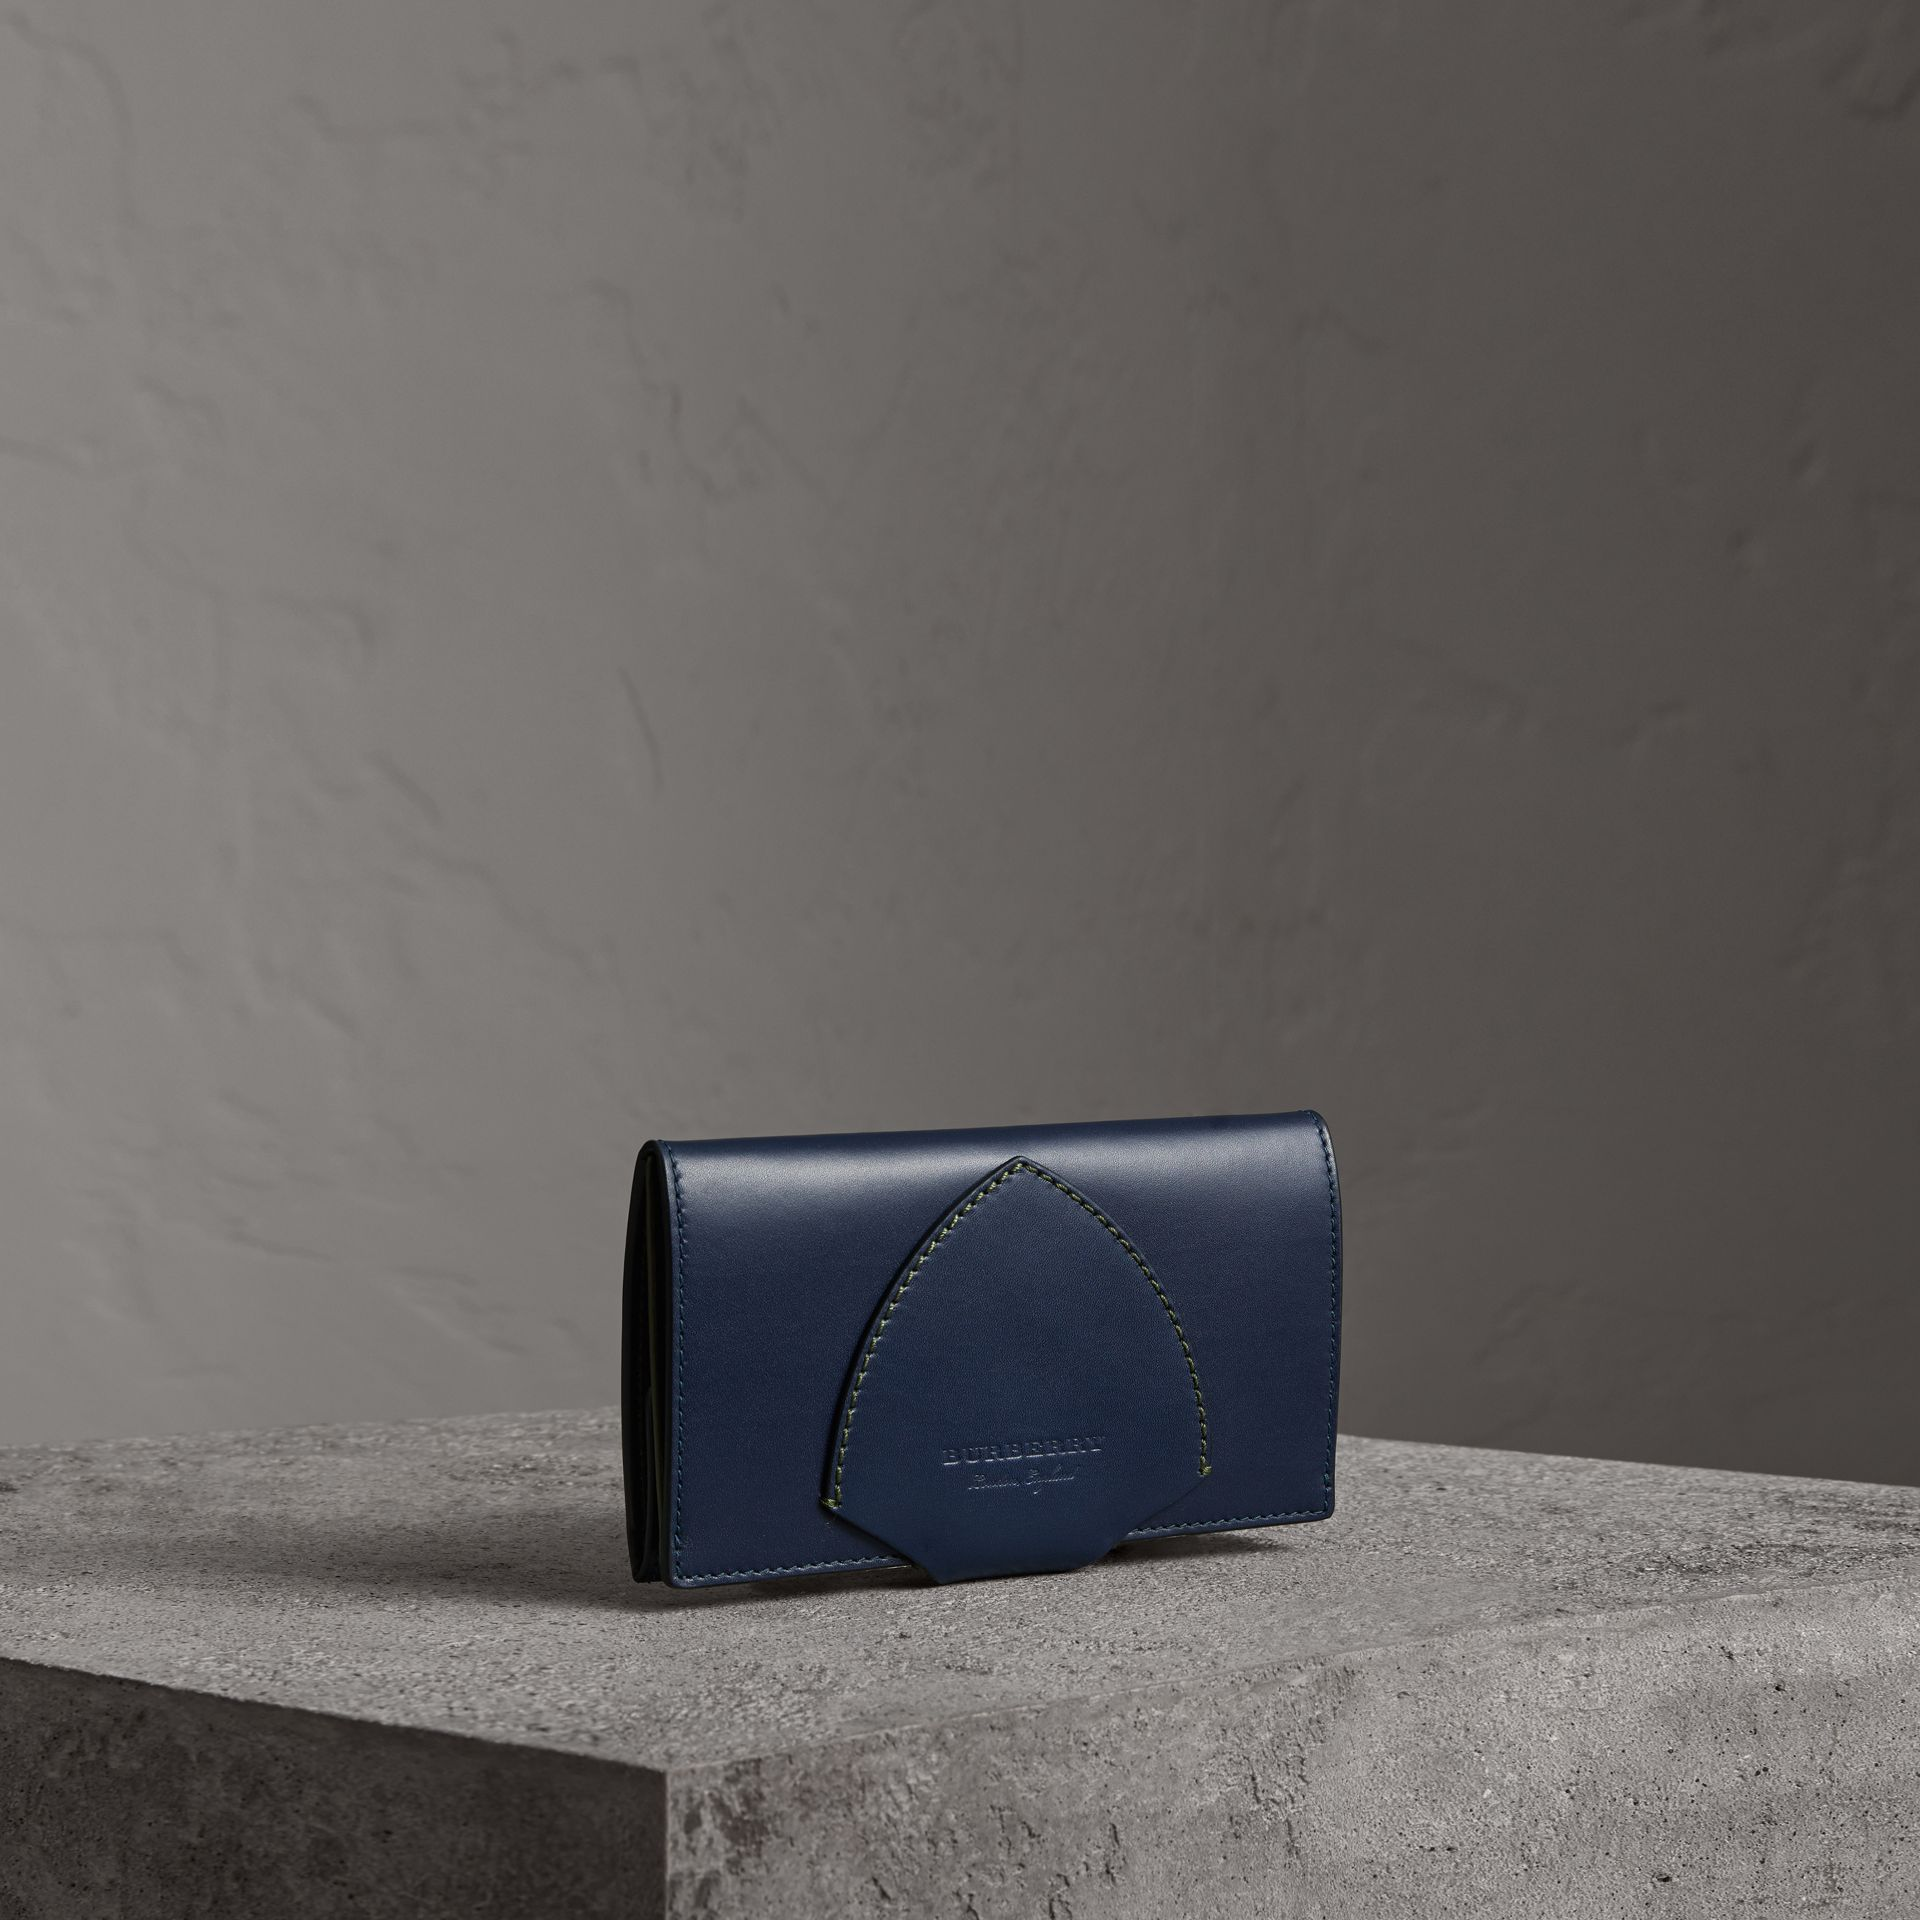 Equestrian Shield Two-tone Leather Continental Wallet in Mid Indigo - Women | Burberry United Kingdom - gallery image 0